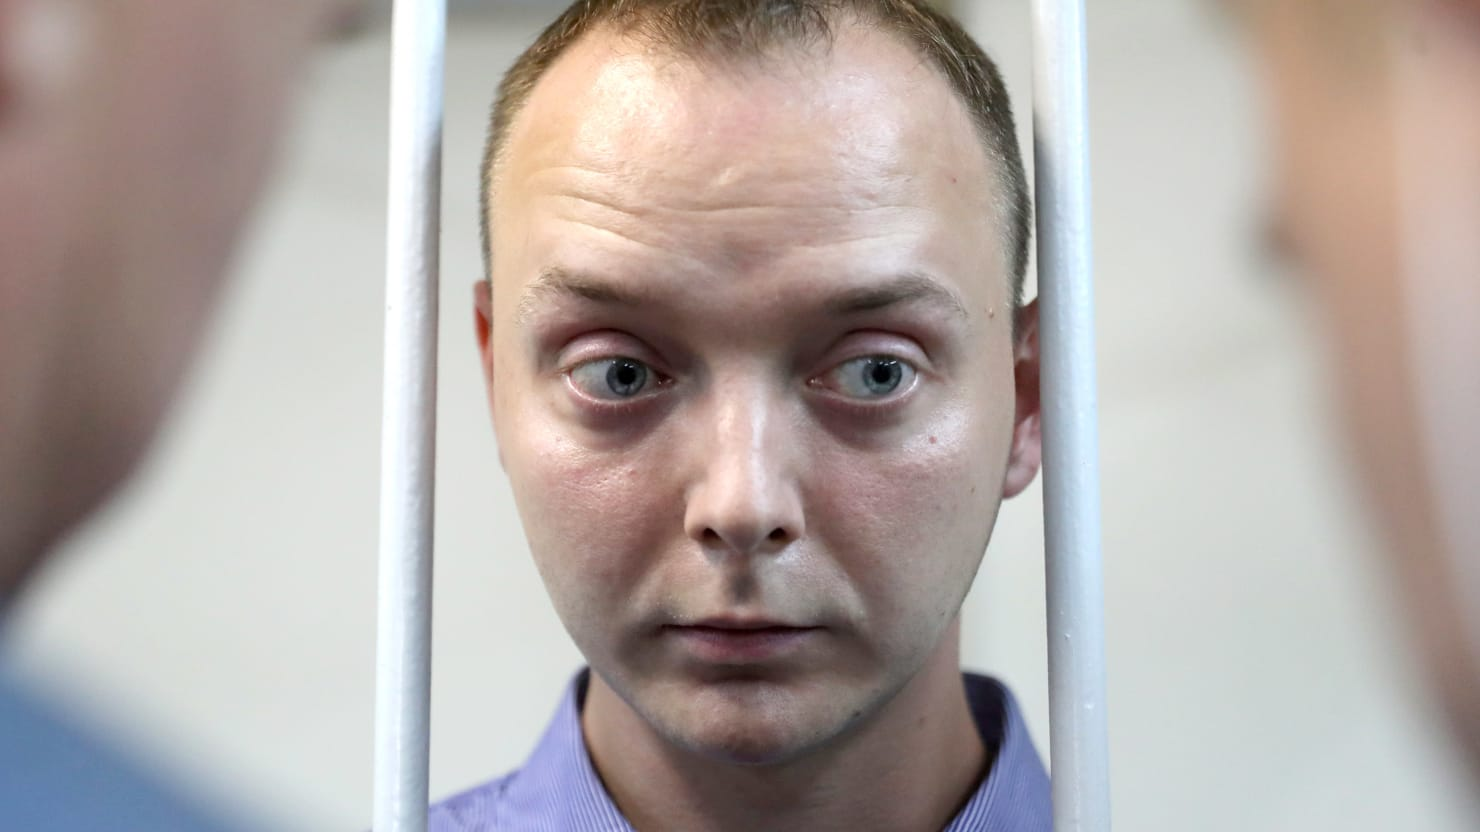 As One of Russia's Leading Journalists is Charged With Treason, a Chill Settles Over the Press